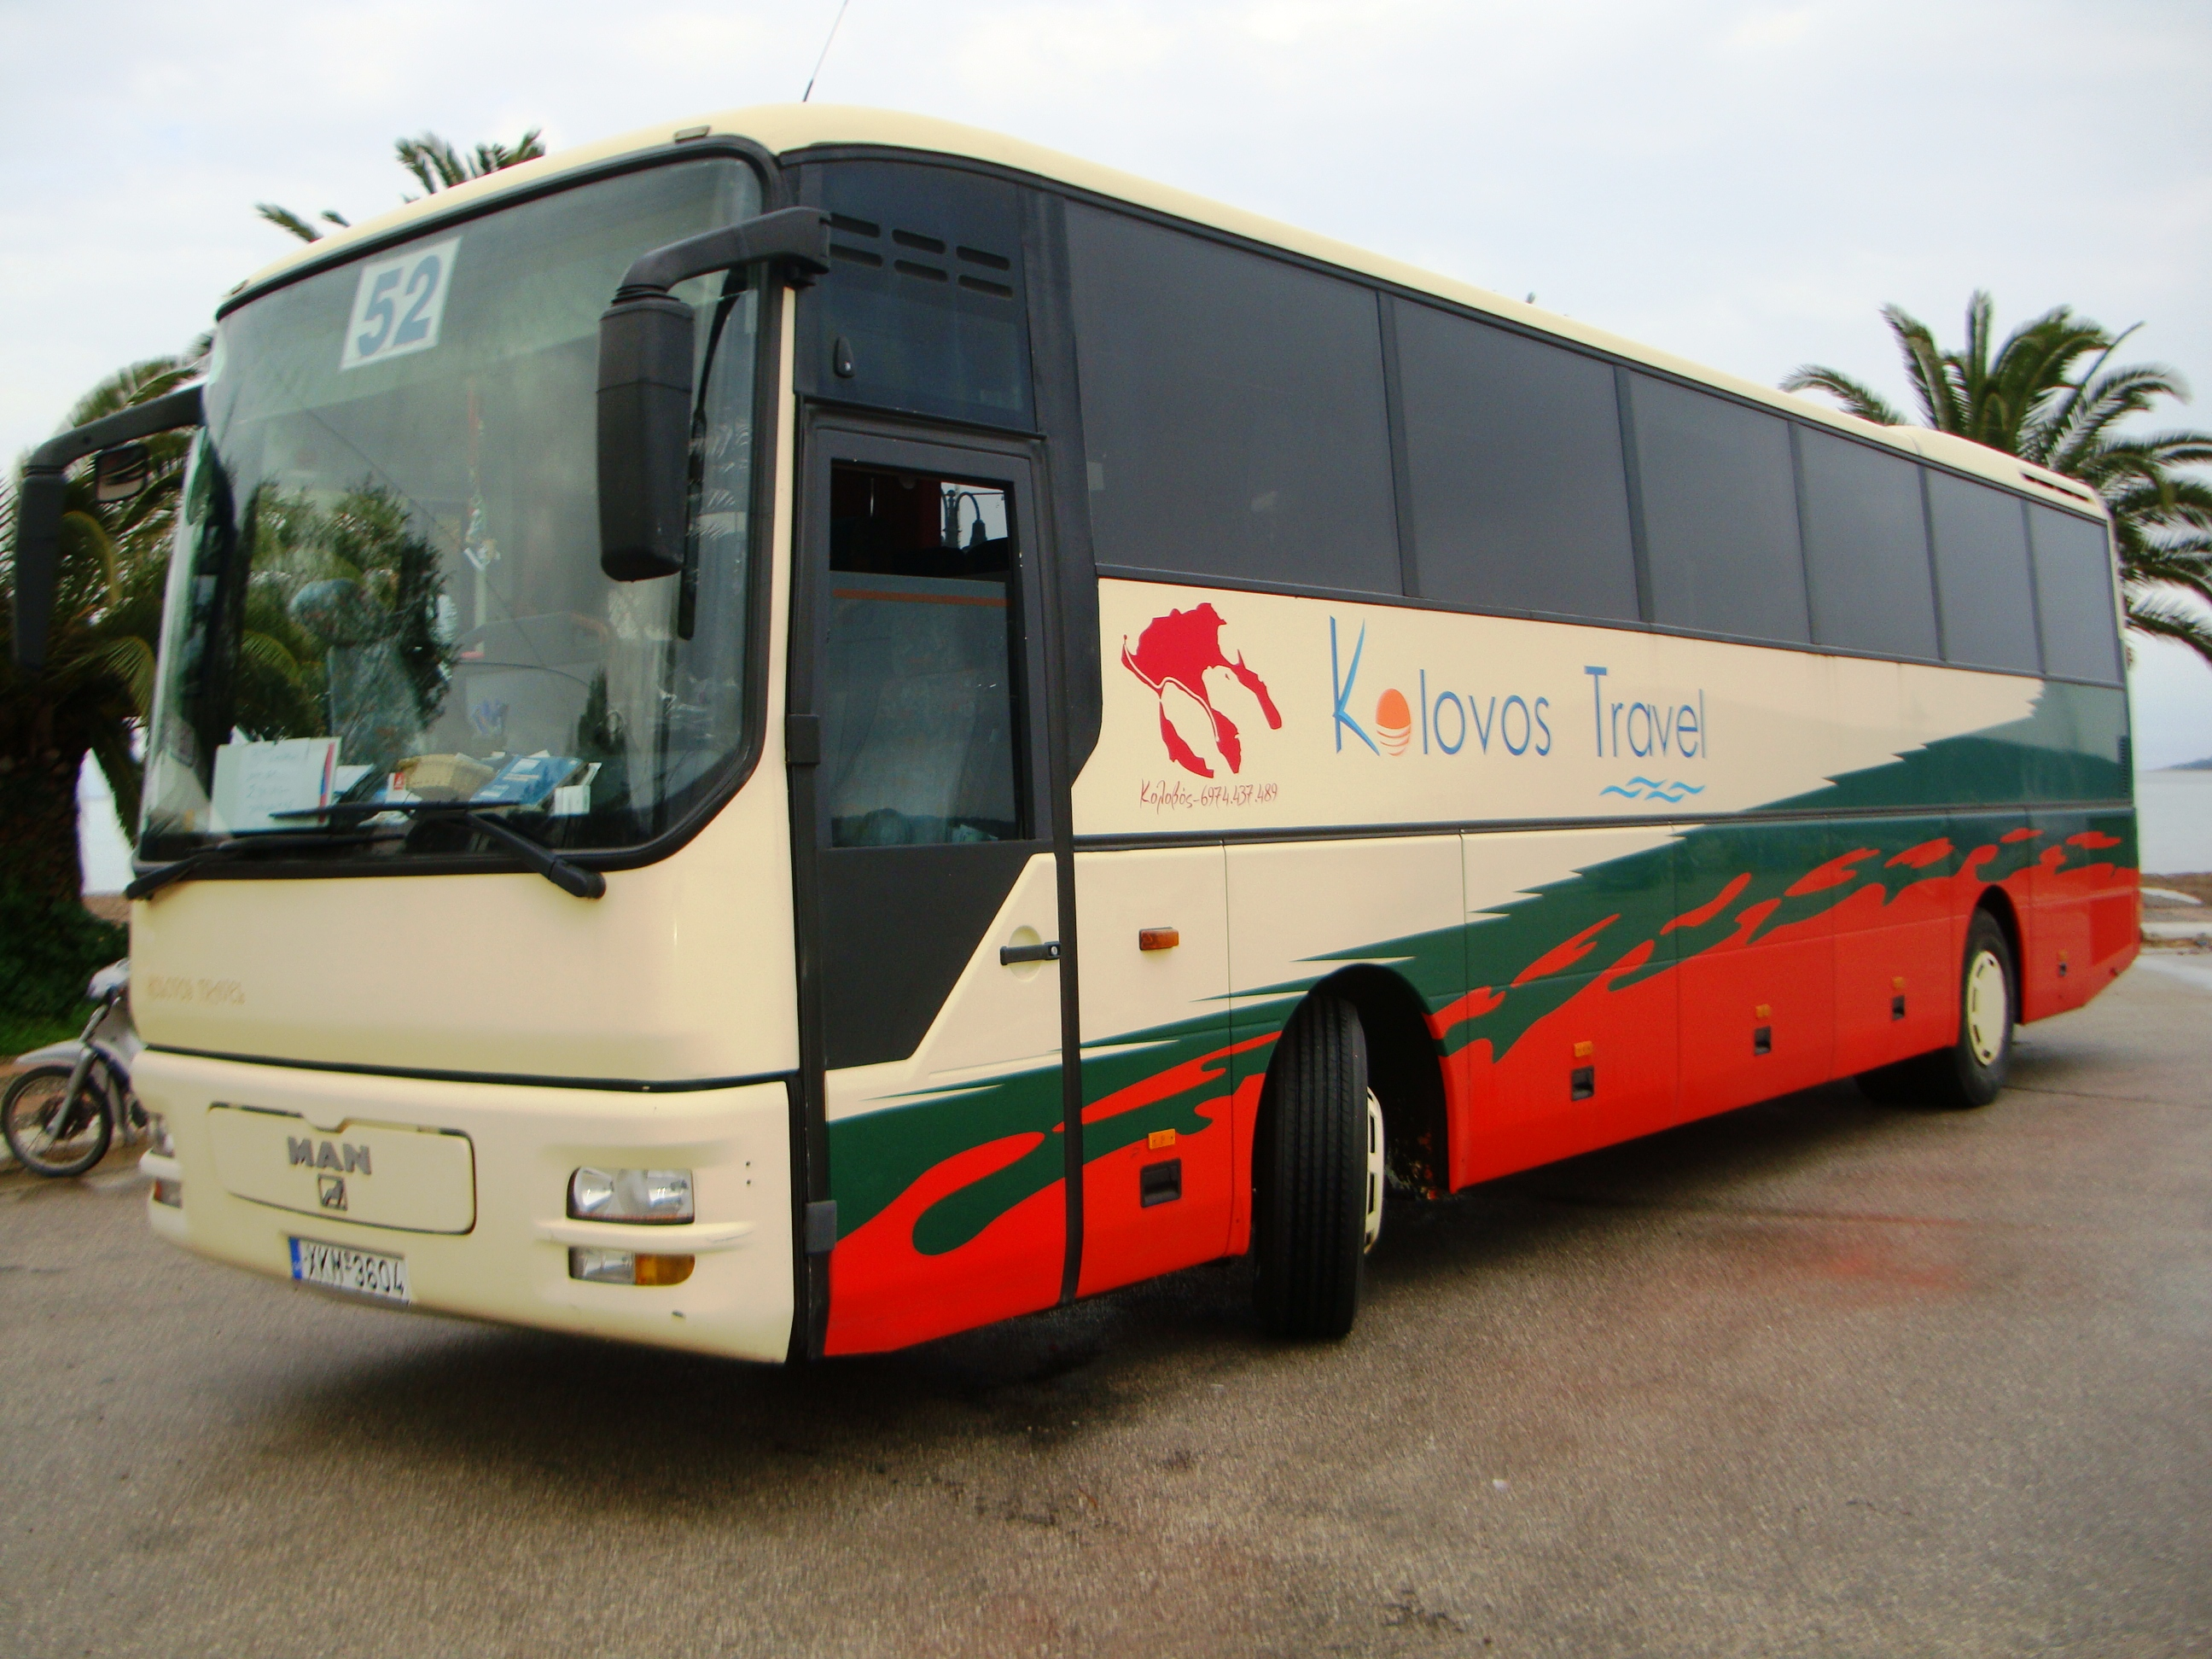 Bus-Hire-Halkidiki-Travel-Agency-Kolovos-Travel-Neos-Marmaras-003